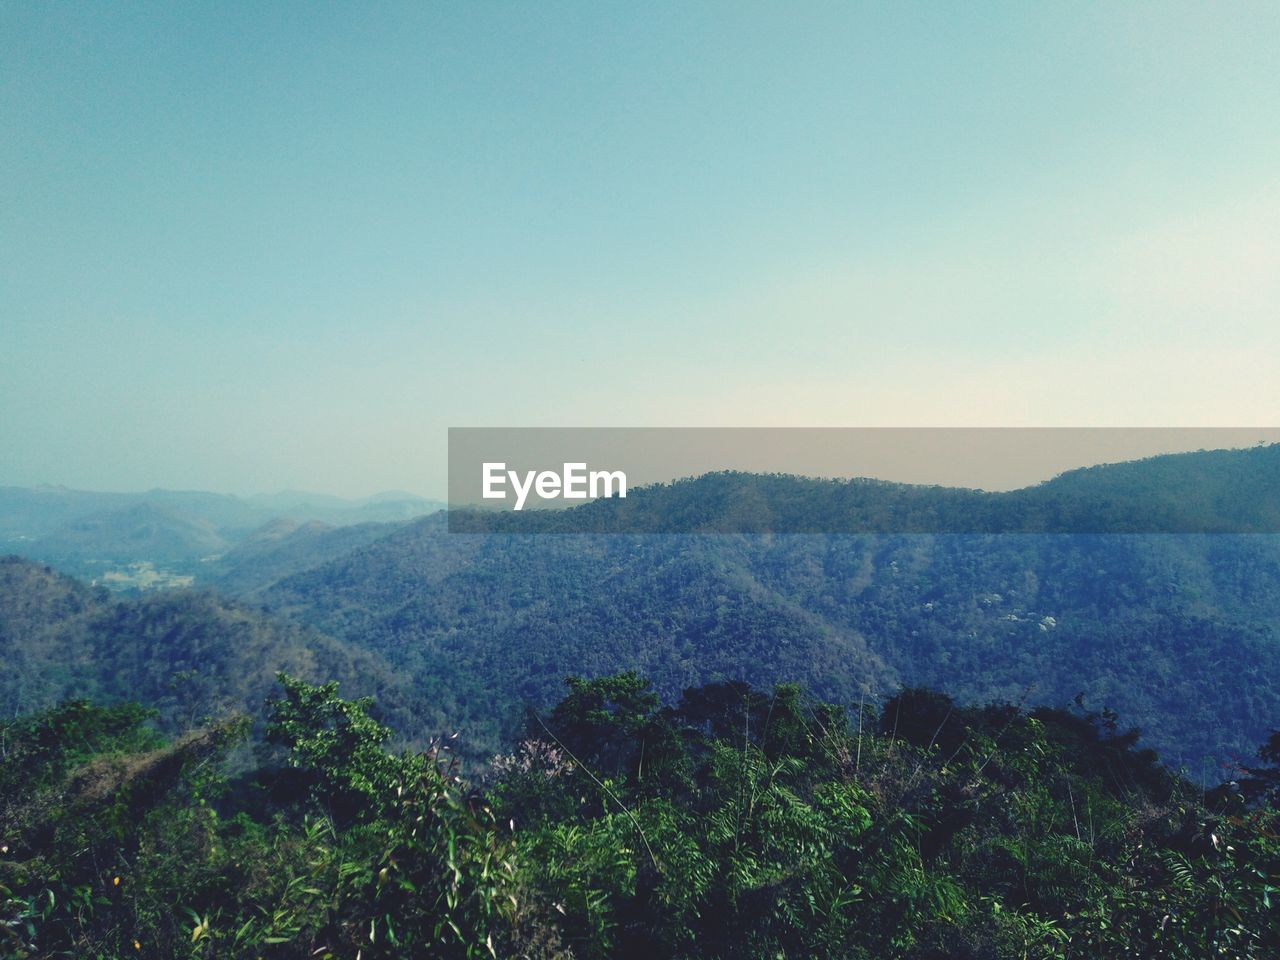 mountain, scenics - nature, sky, beauty in nature, tranquility, tranquil scene, environment, copy space, tree, landscape, plant, no people, nature, mountain range, non-urban scene, day, clear sky, idyllic, forest, outdoors